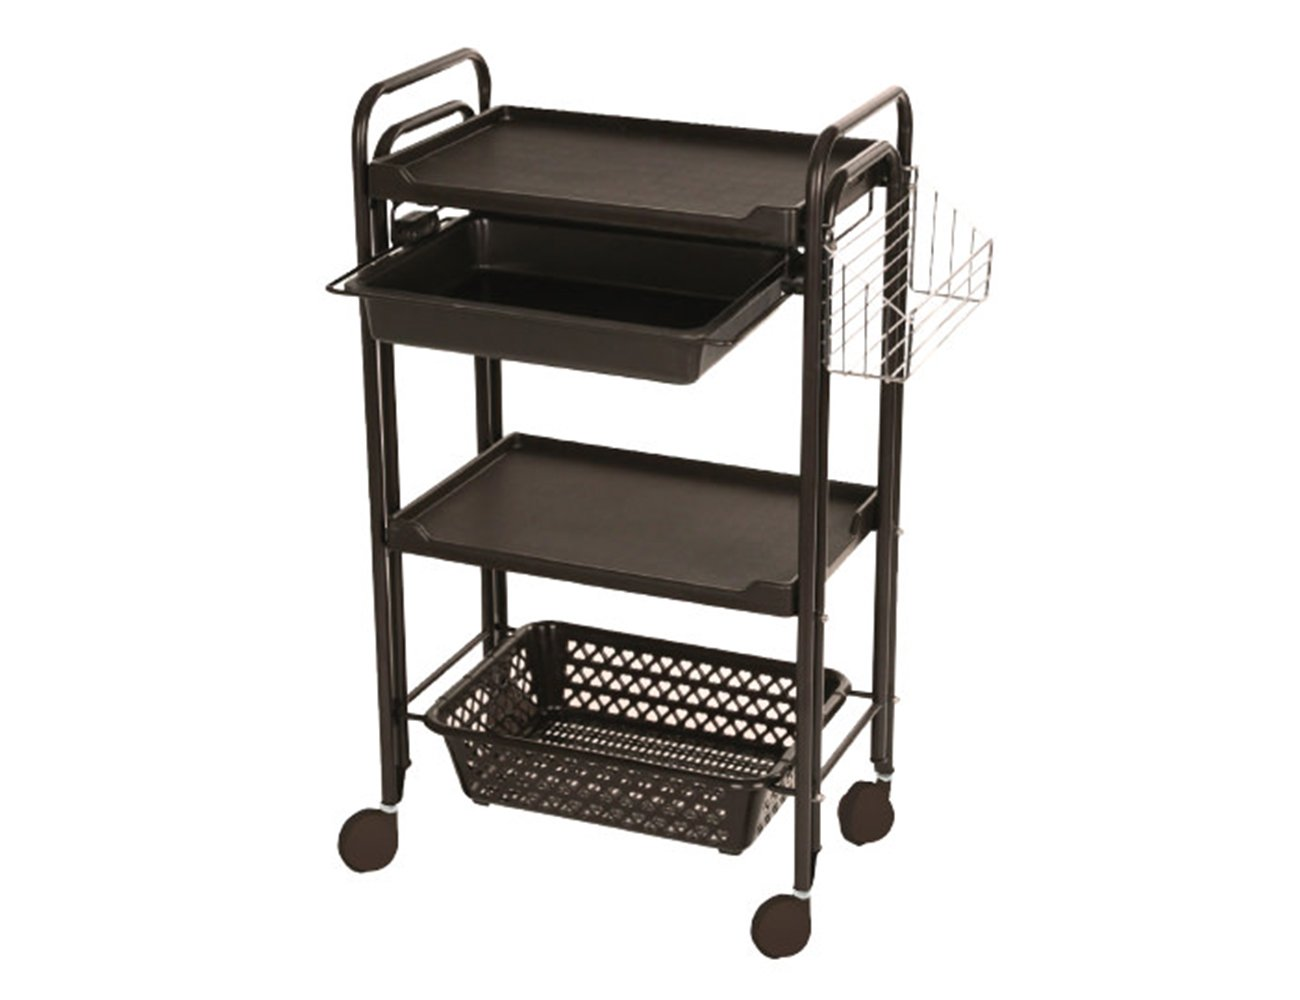 Beauty Salon Plastic Rolling Trolley Storage Organizer Cart 3 Tier With Drawer Two Color Optional Elitzia ETST21 (Brown)